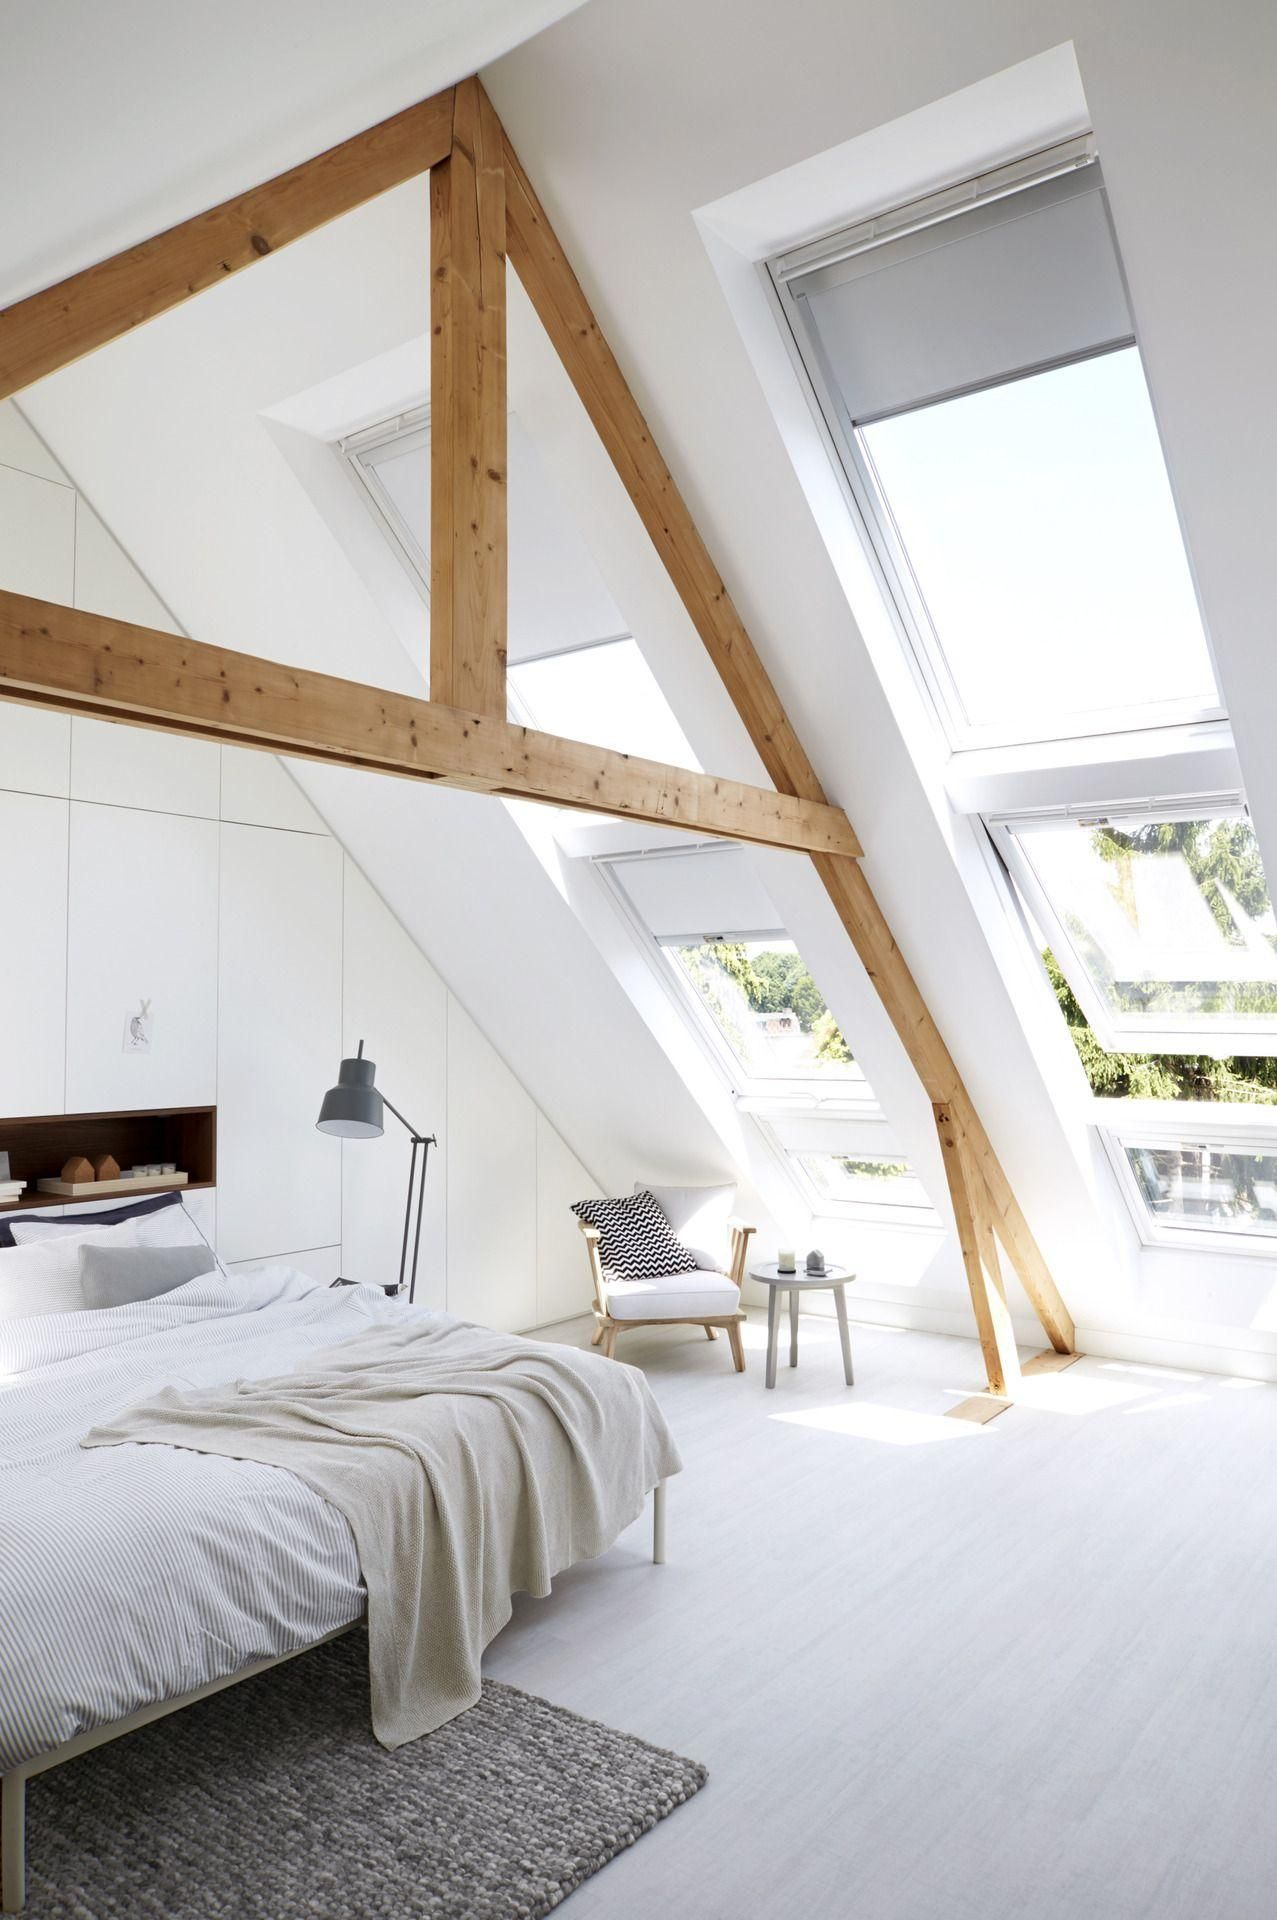 Schlafzimmer Ideen Dachgeschoss Attic Bedroom Designs Bedroom Design Amazing Bedroom Designs